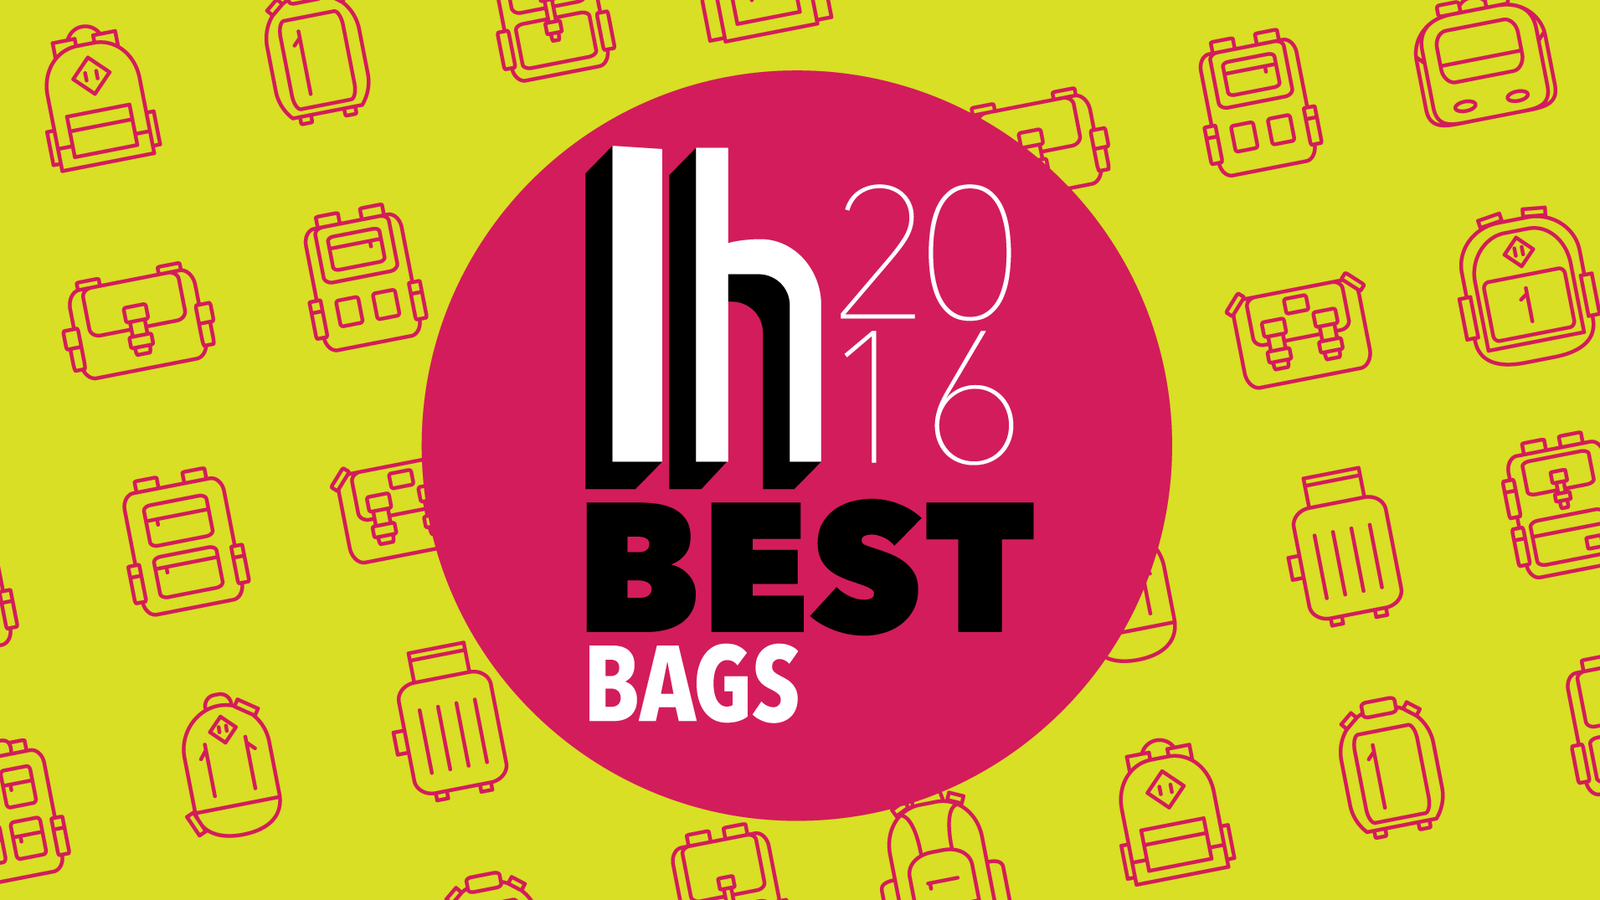 Most Popular Featured Bags of 2016